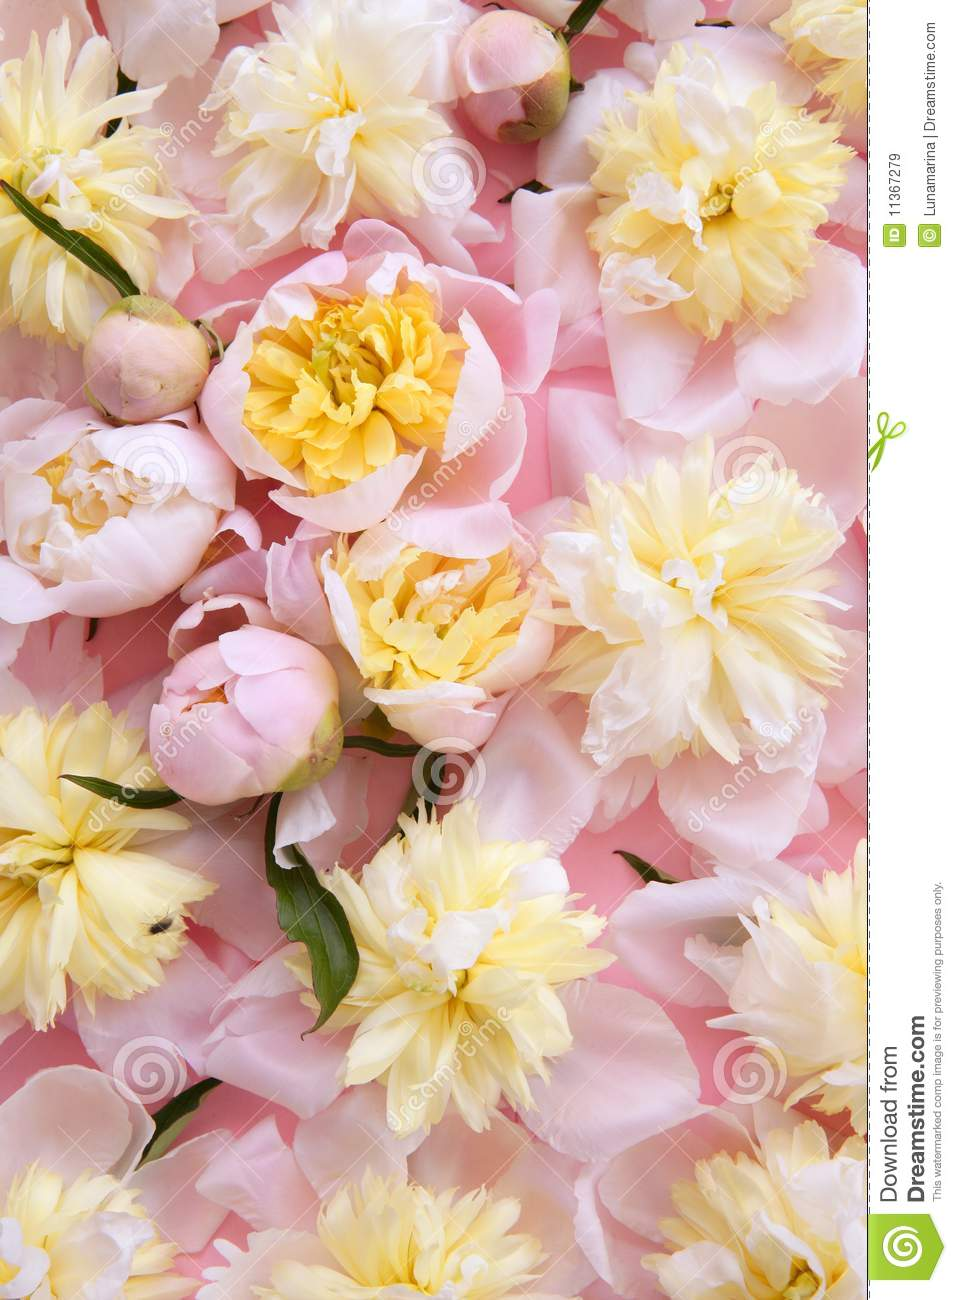 Colorful pink and yellow flowers background stock image image of colorful pink and yellow flowers background mightylinksfo